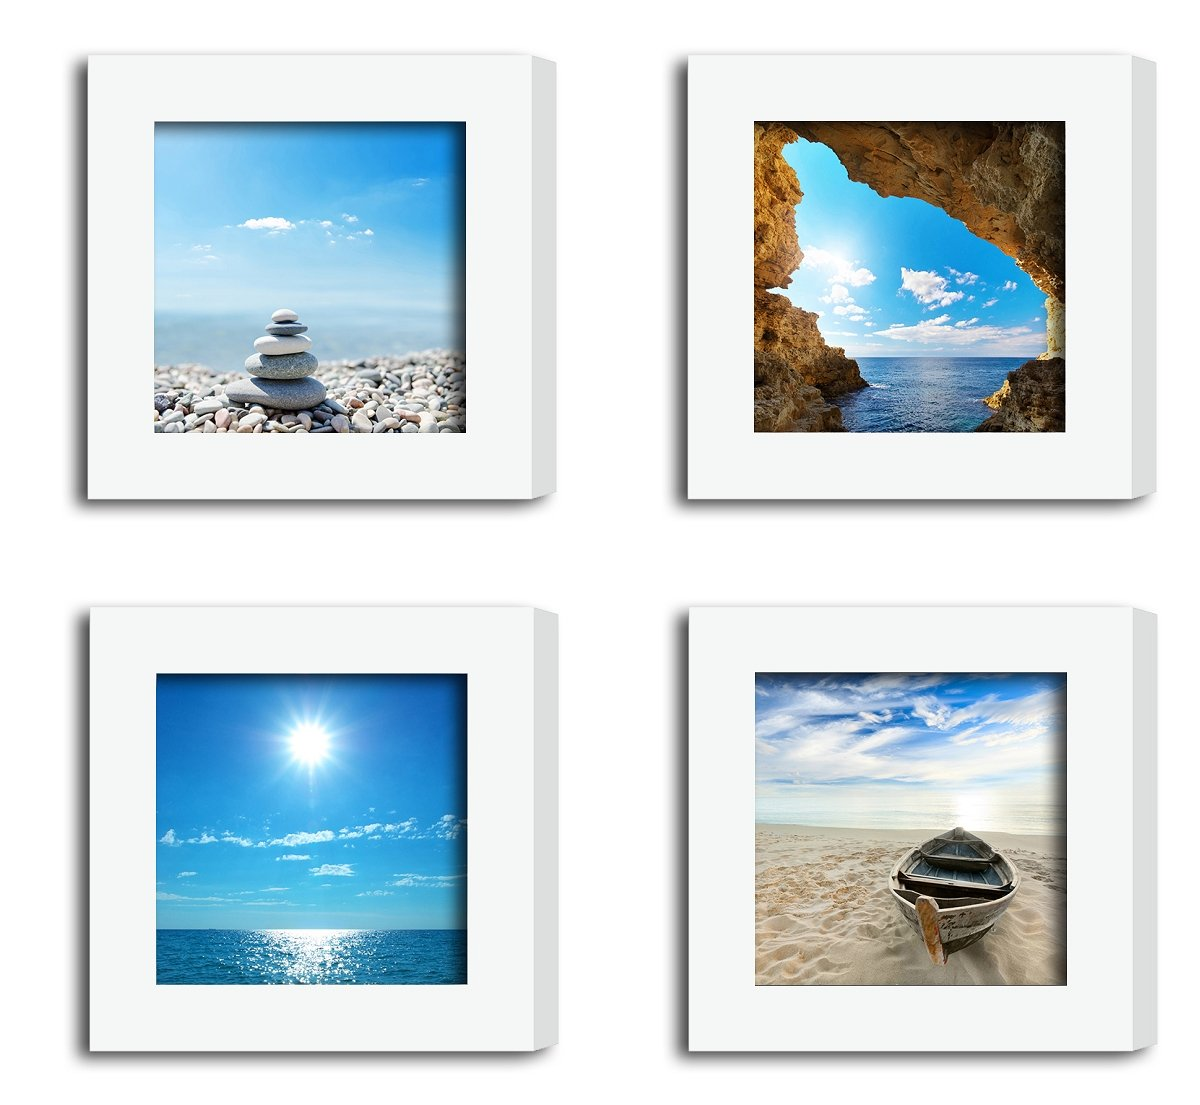 4Pcs 4x4 Real Glass Wood Frame White Square , Fit Family Pictures 4x4'' Photo (Window 3.6x3.6 inch ) , Desktop Stand On Wall Family Combine Sea Jetty Beach Motivational Decoration (10 Set Pictures) 09 by XUFLY